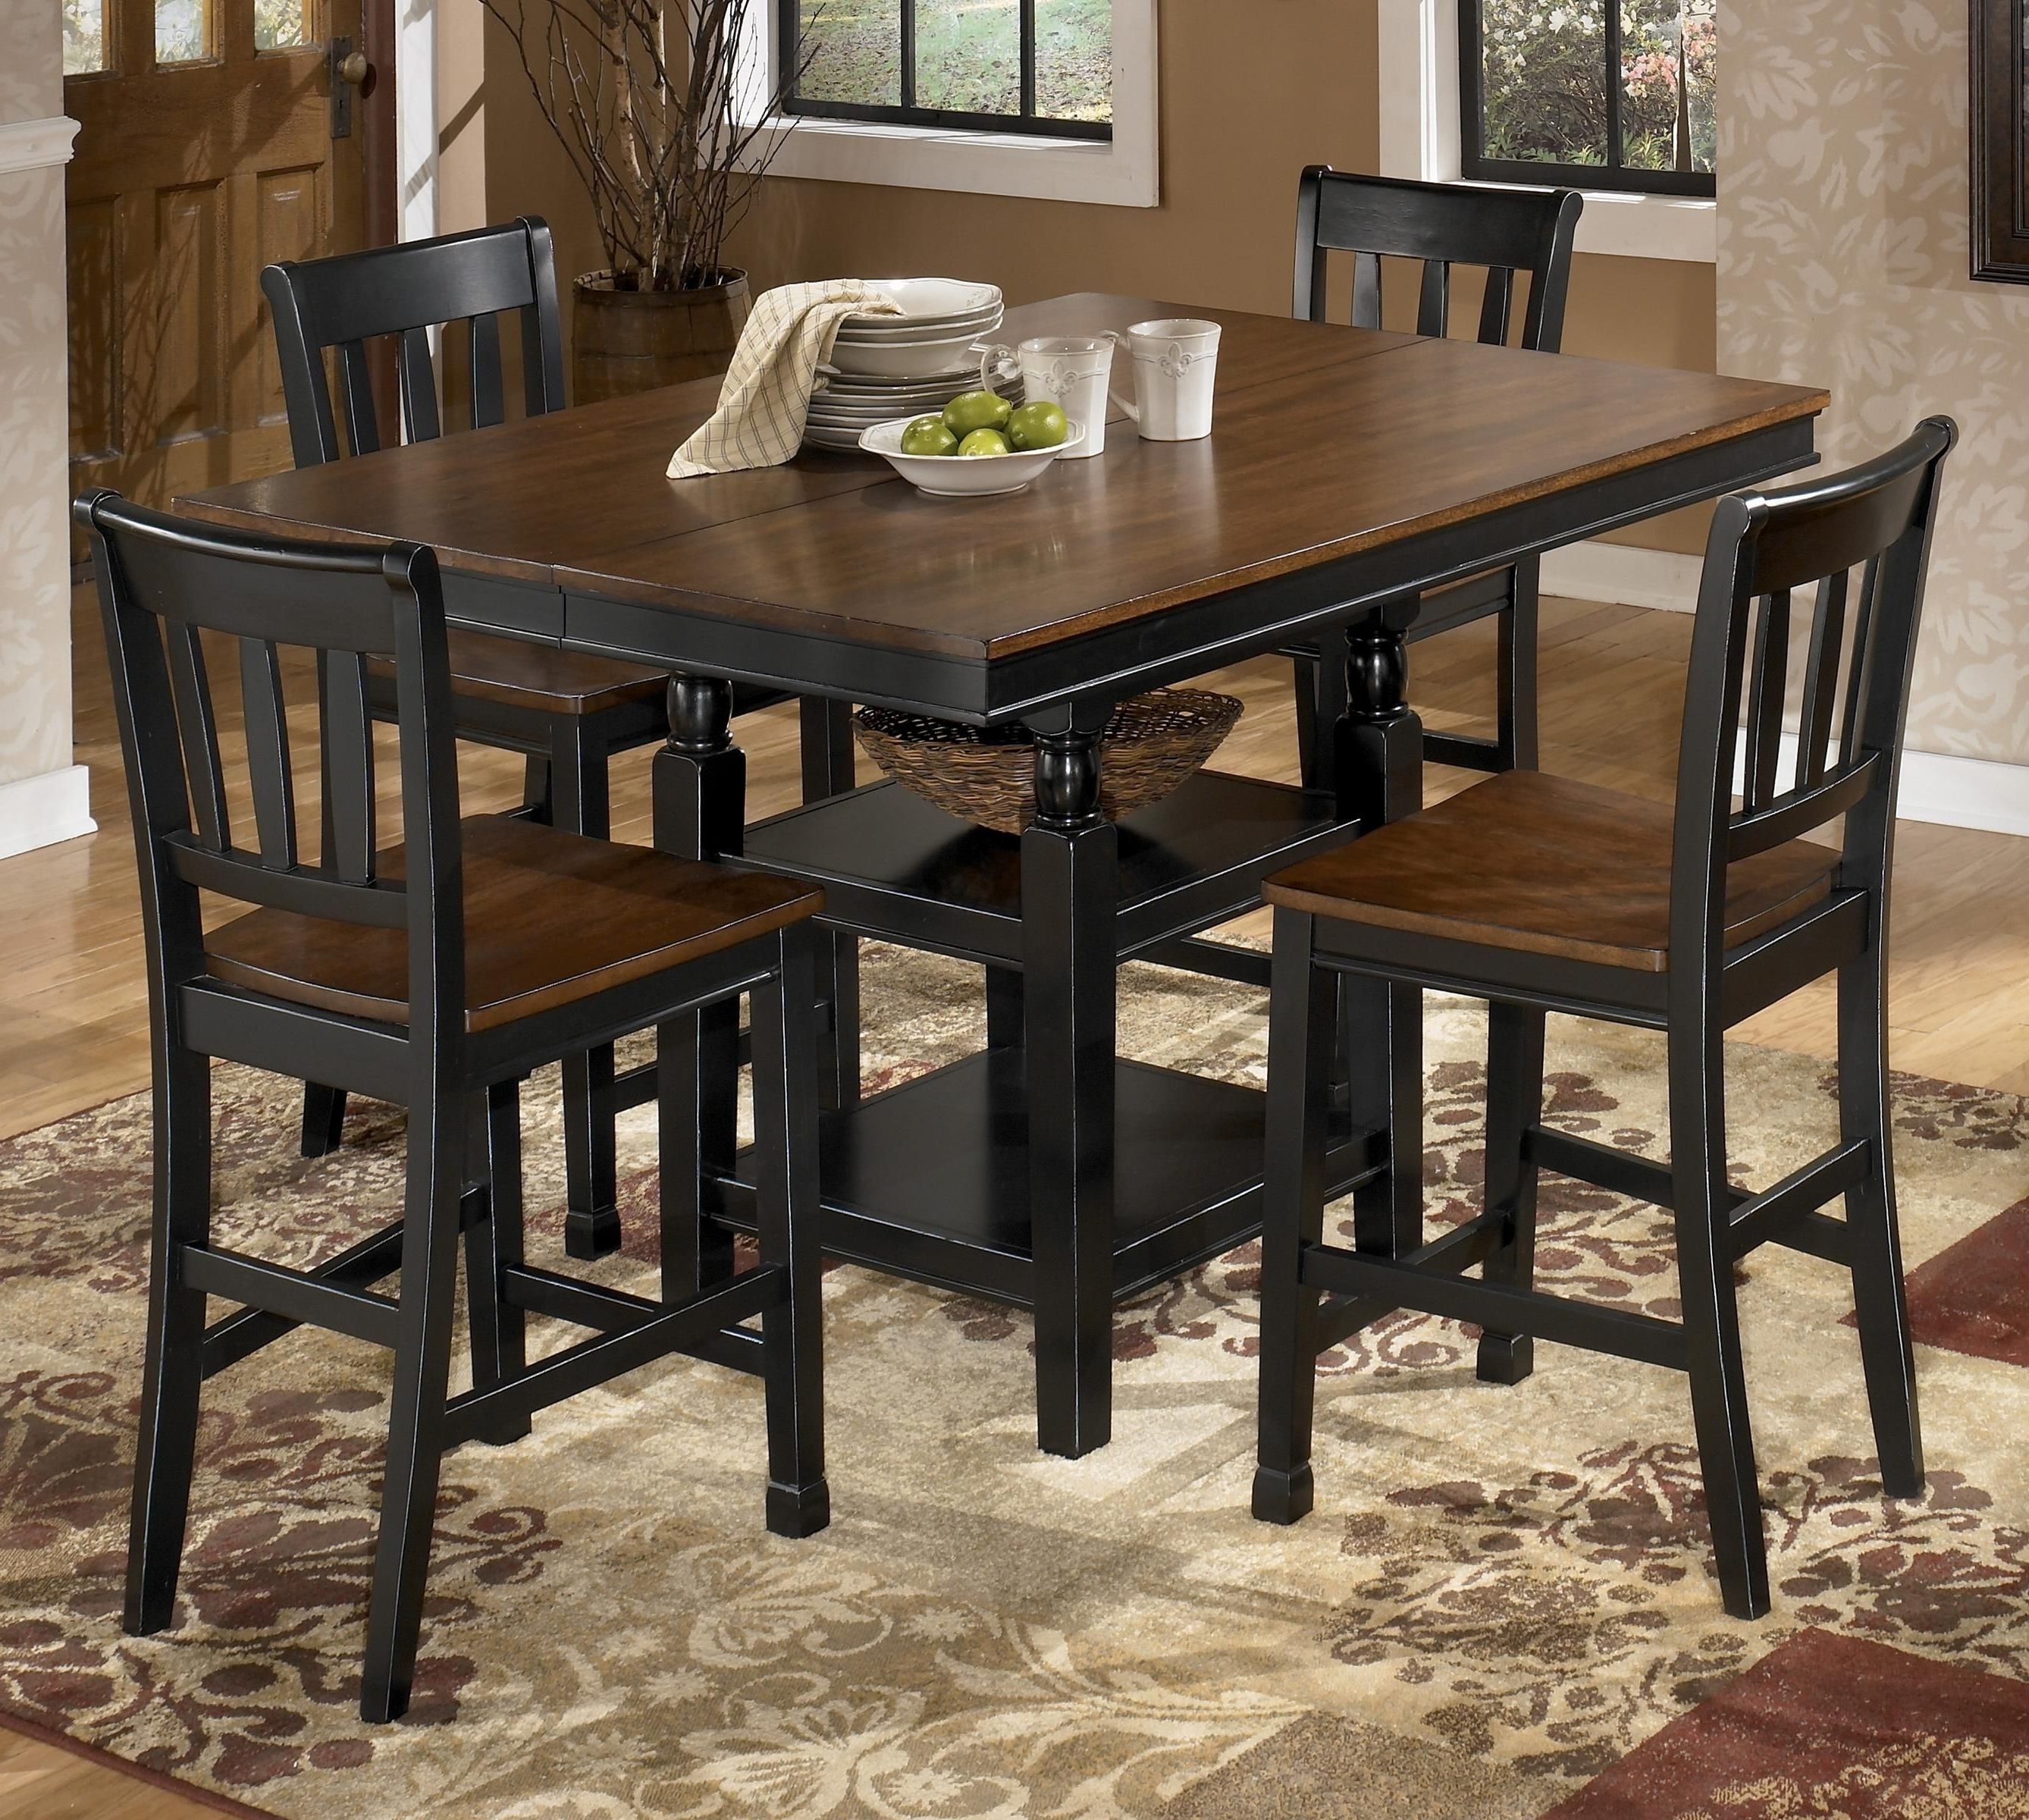 Jaxon Grey 5 Piece Round Extension Dining Sets With Wood Chairs With Regard To Recent Ashton Round Pedestal Dining Table Elegant Kitchen Dining Area (View 16 of 25)